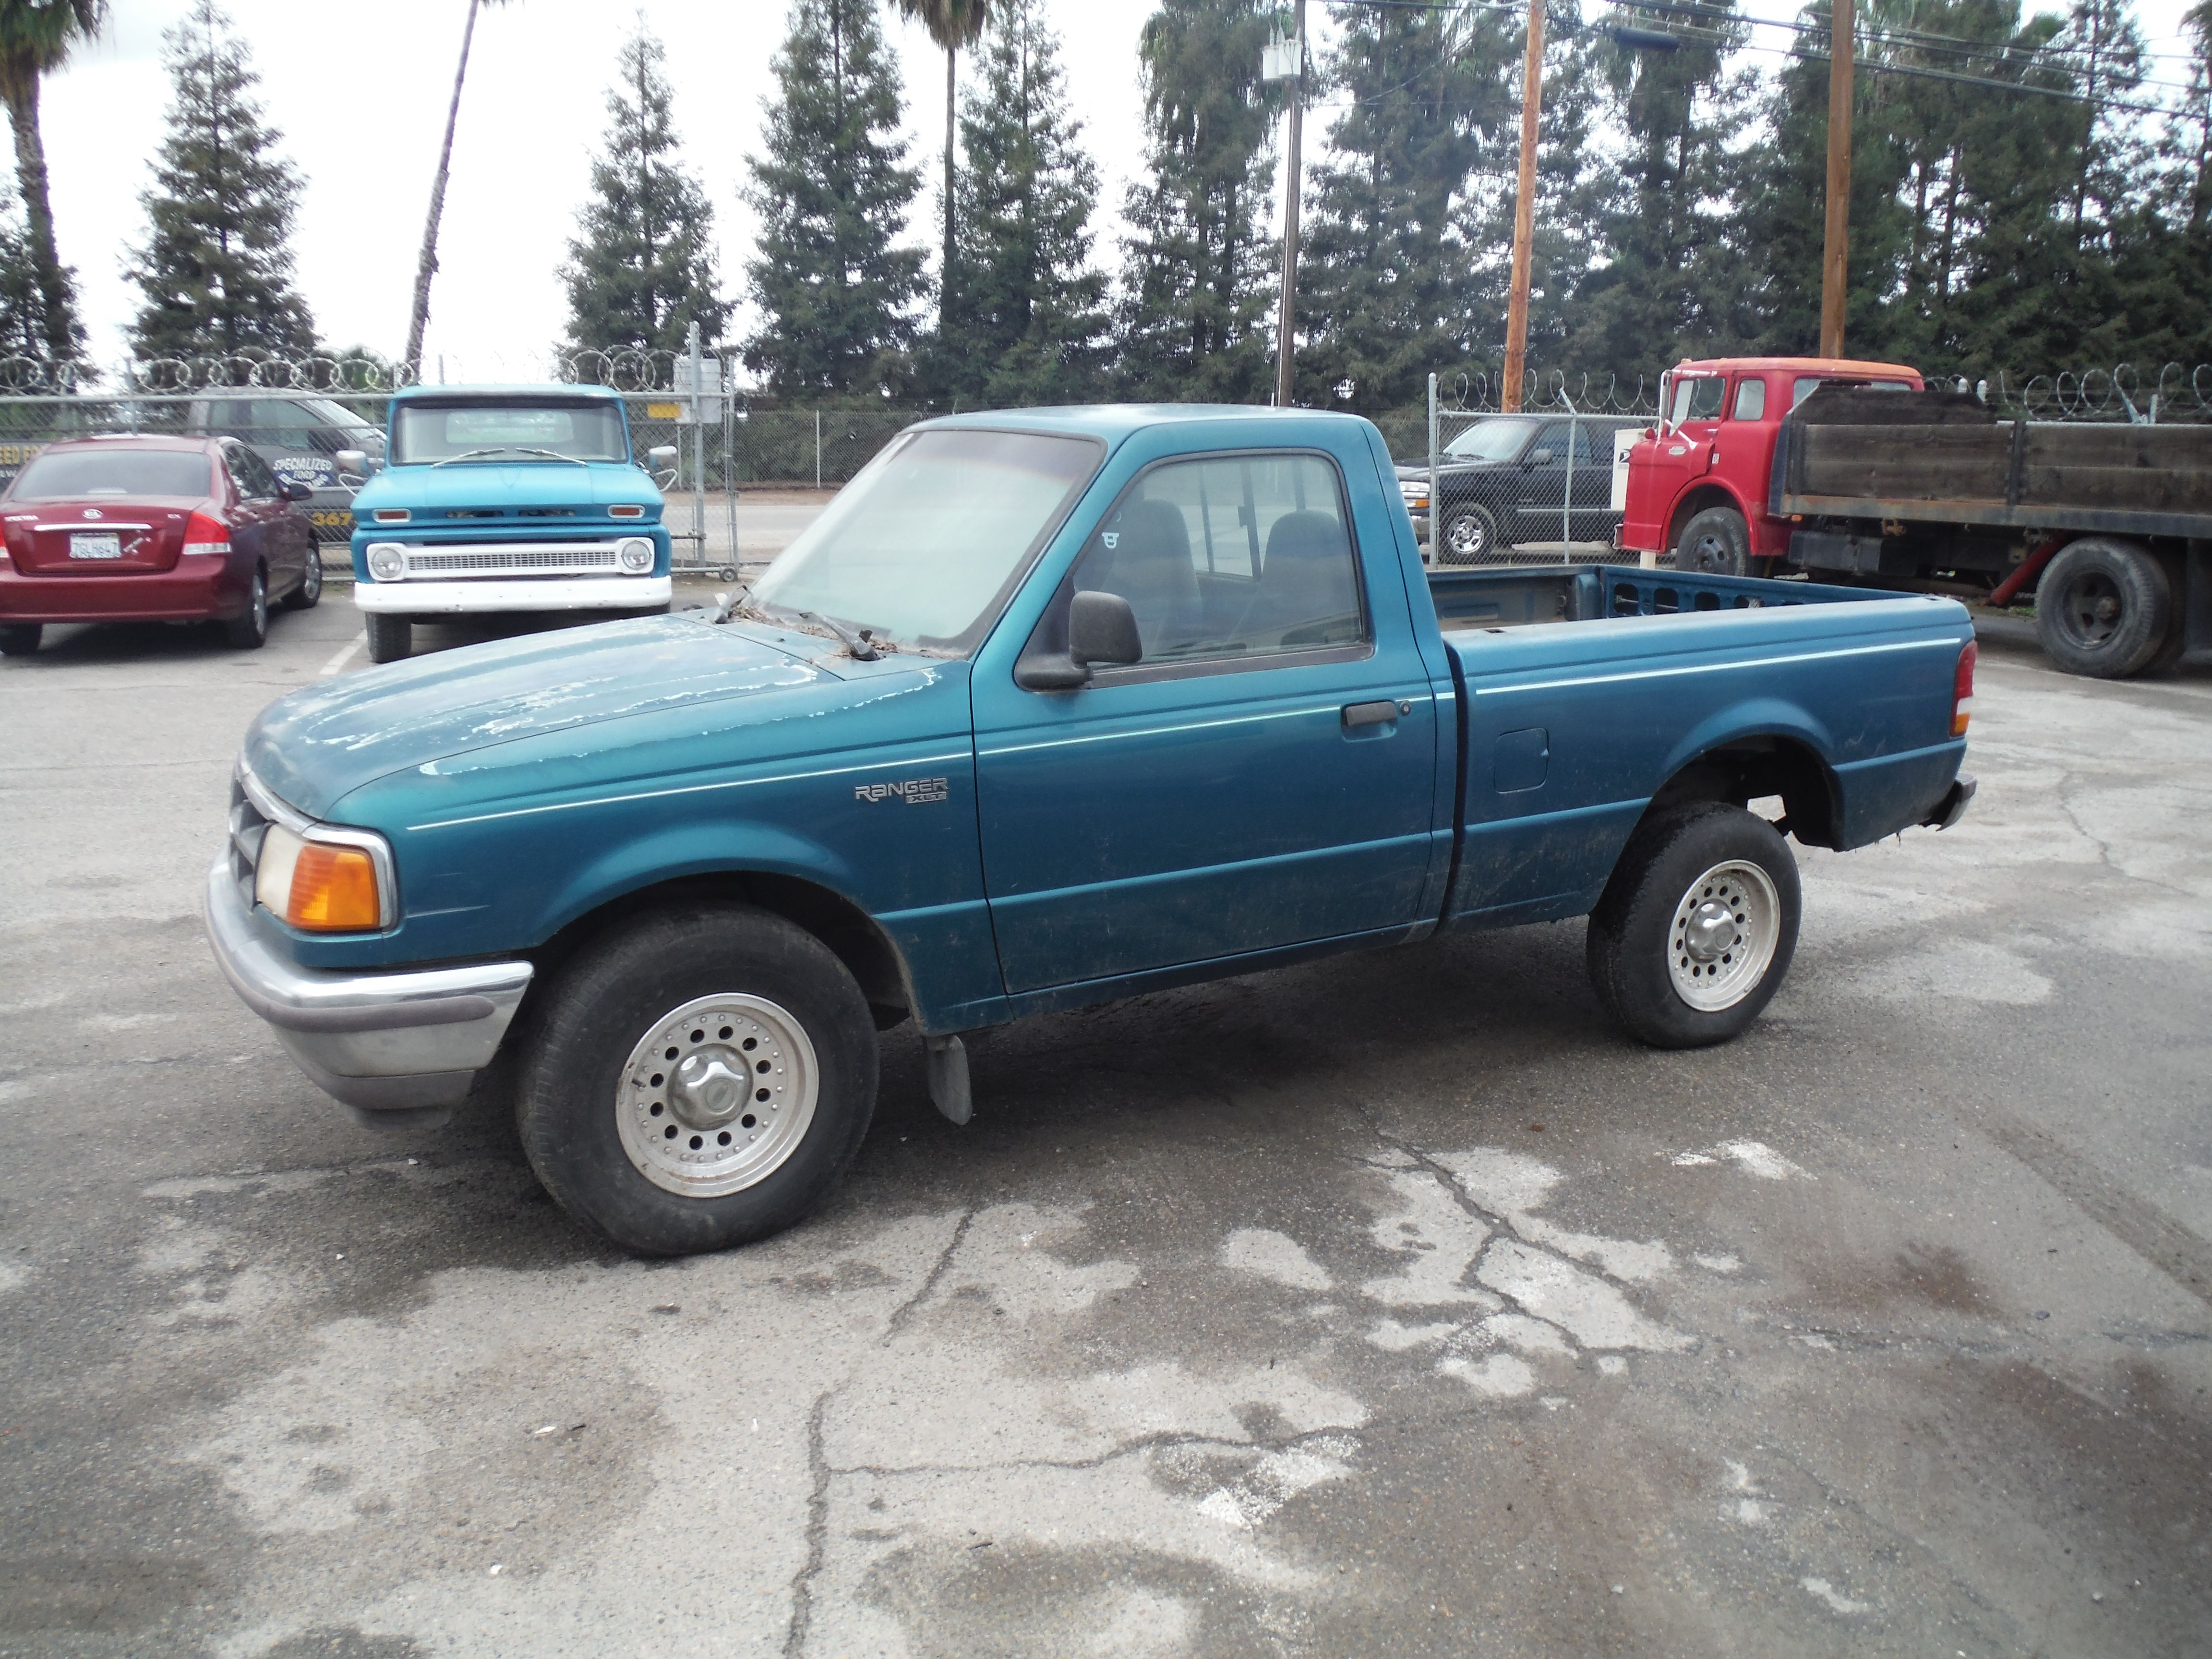 1997 ford ranger xlt regular cab short bed 2wd 2 3l with 158k miles